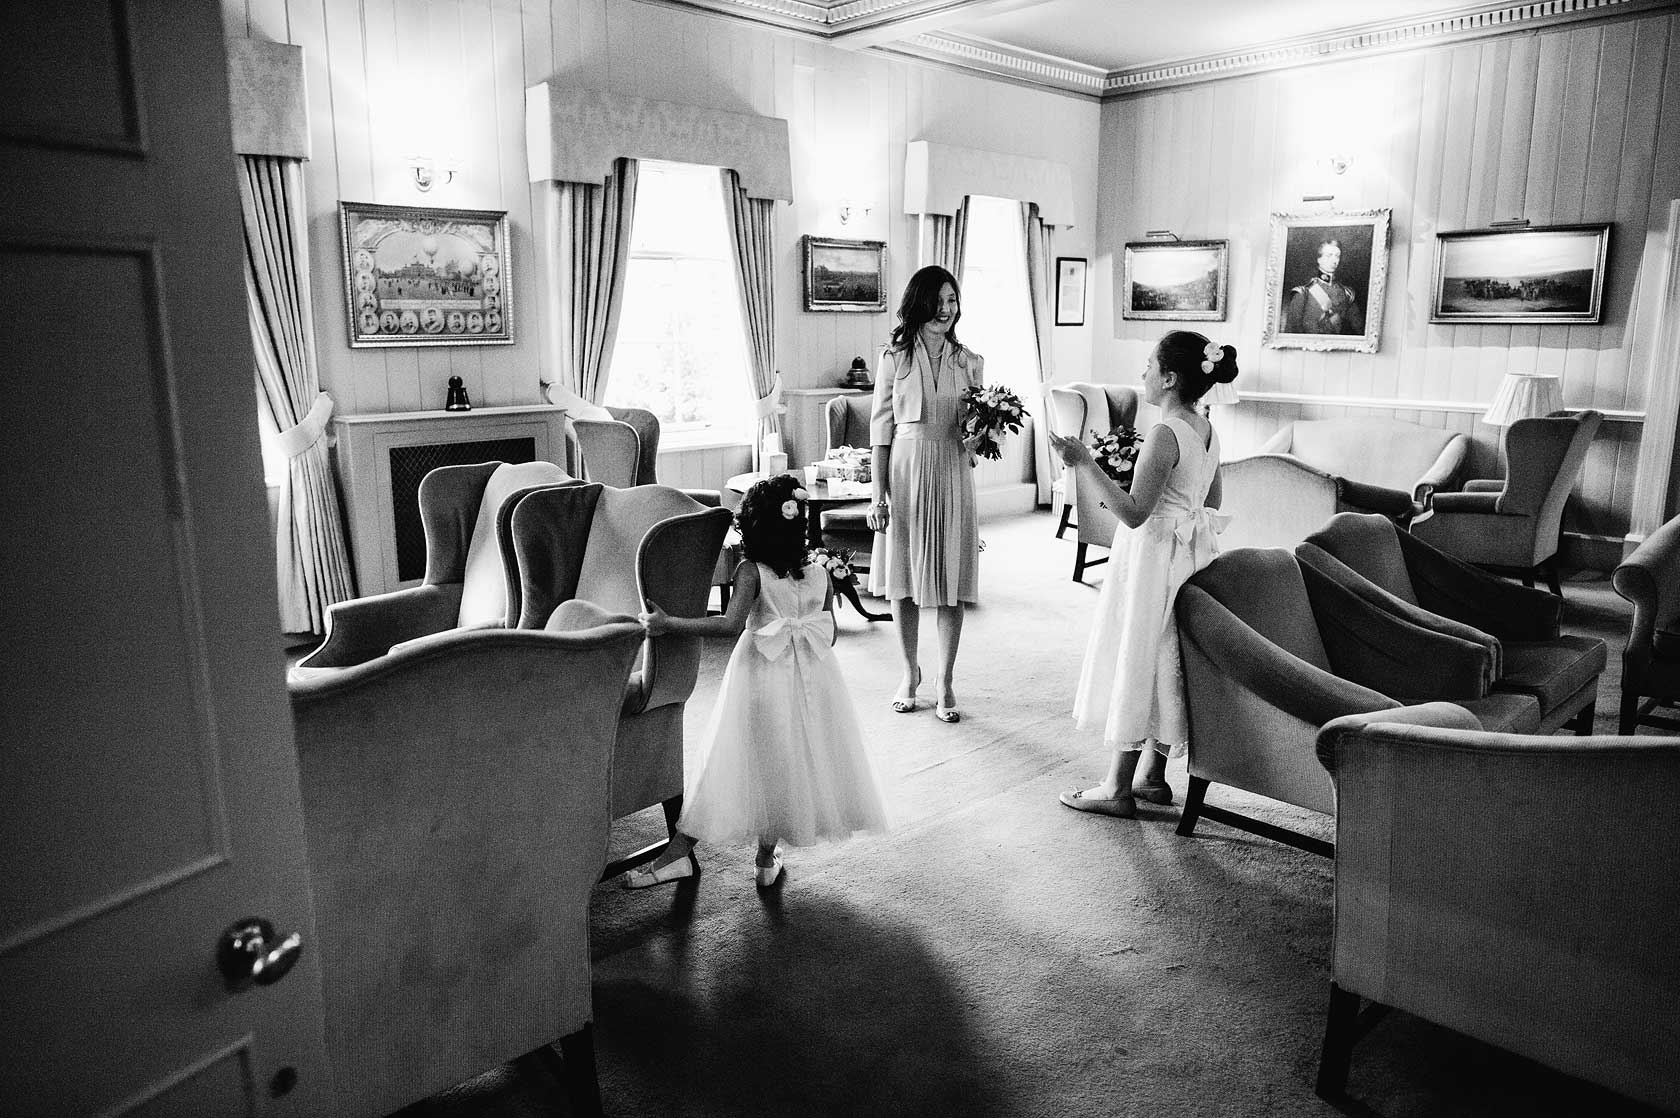 Reportage Wedding Photography at Honourable Artillery Company